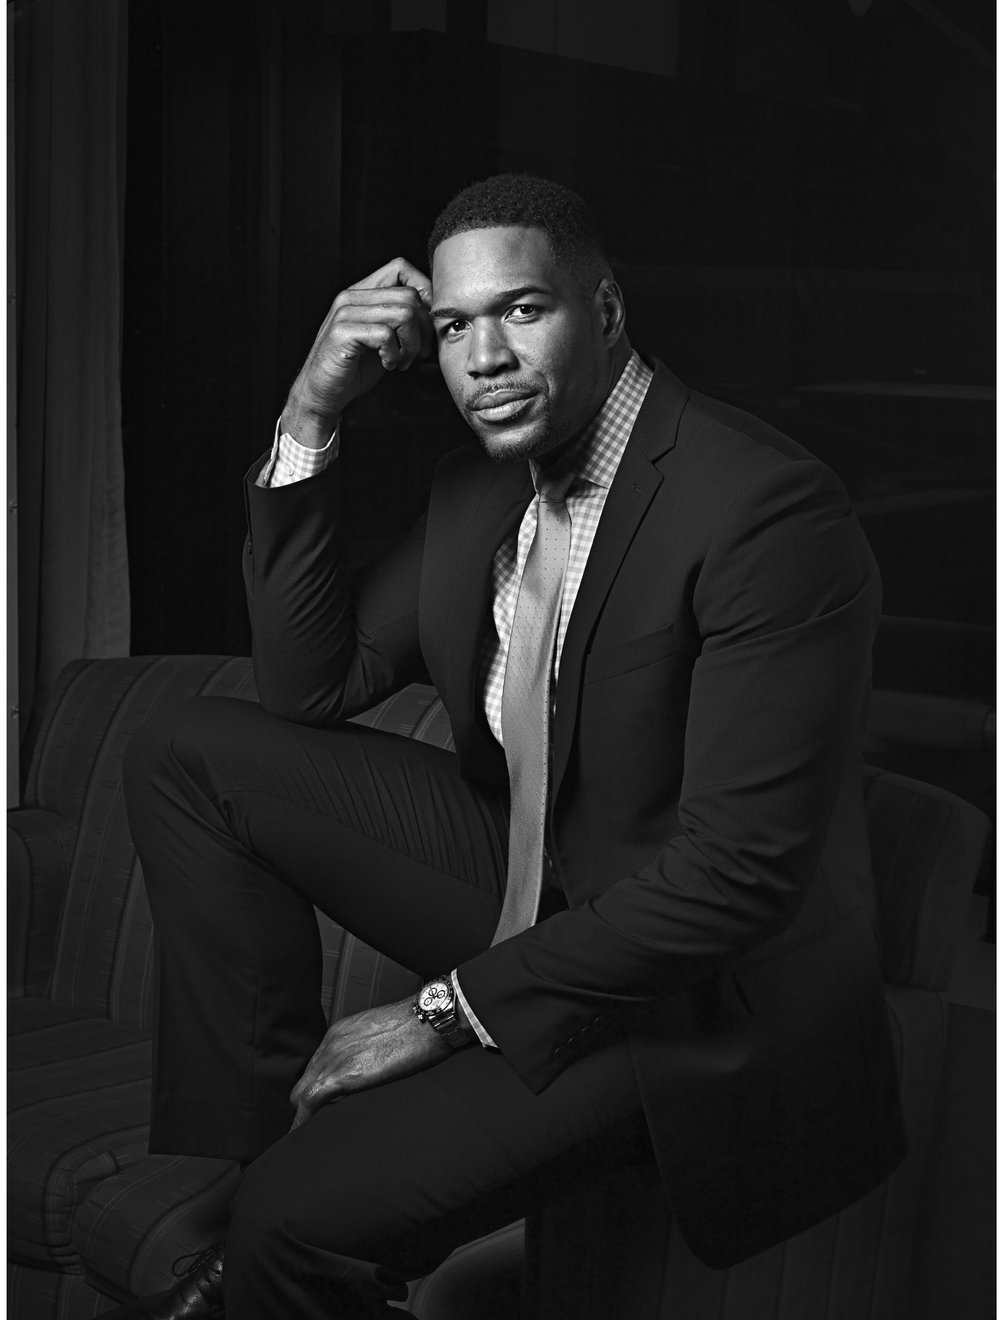 MICHAEL STRAHAN   MEDIA PERSONALITY, FORMER NFL PLAYER